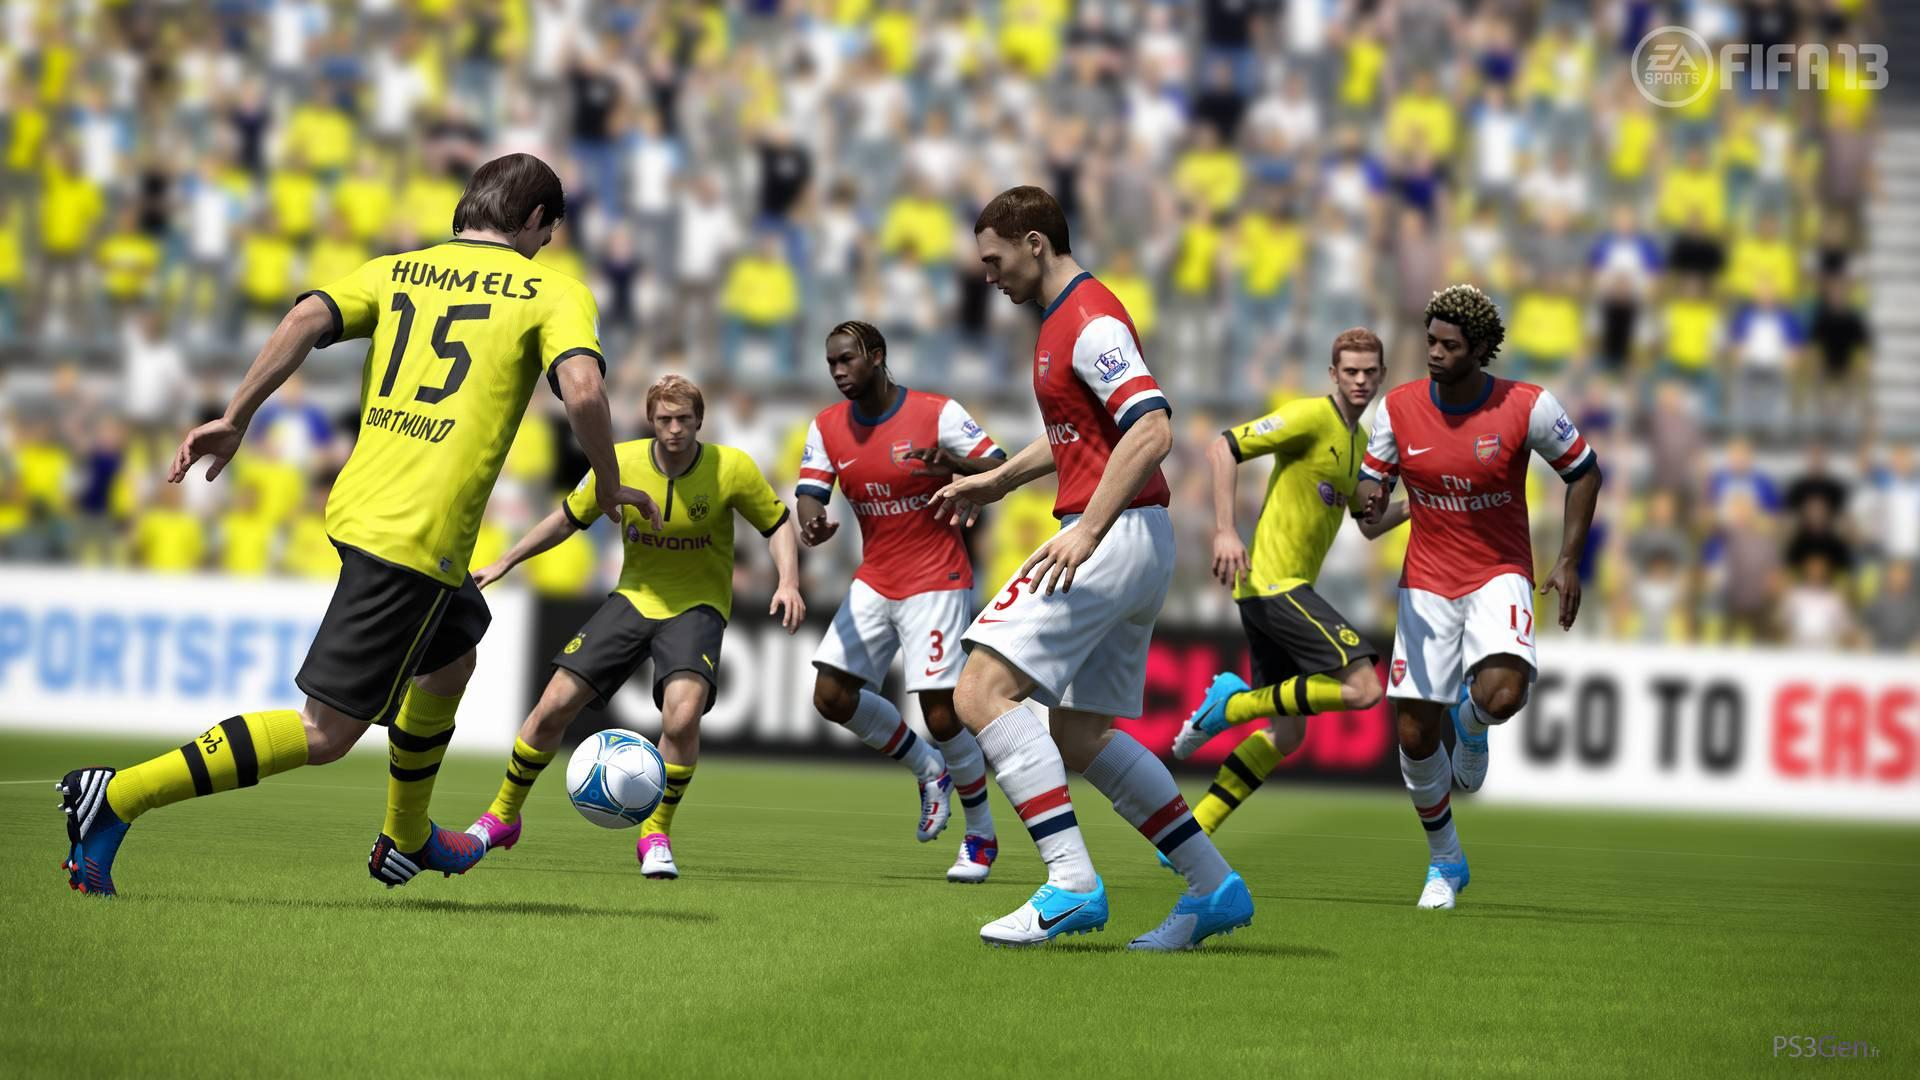 screenshot_FIFA 13 _90aa-573669ebcdc0